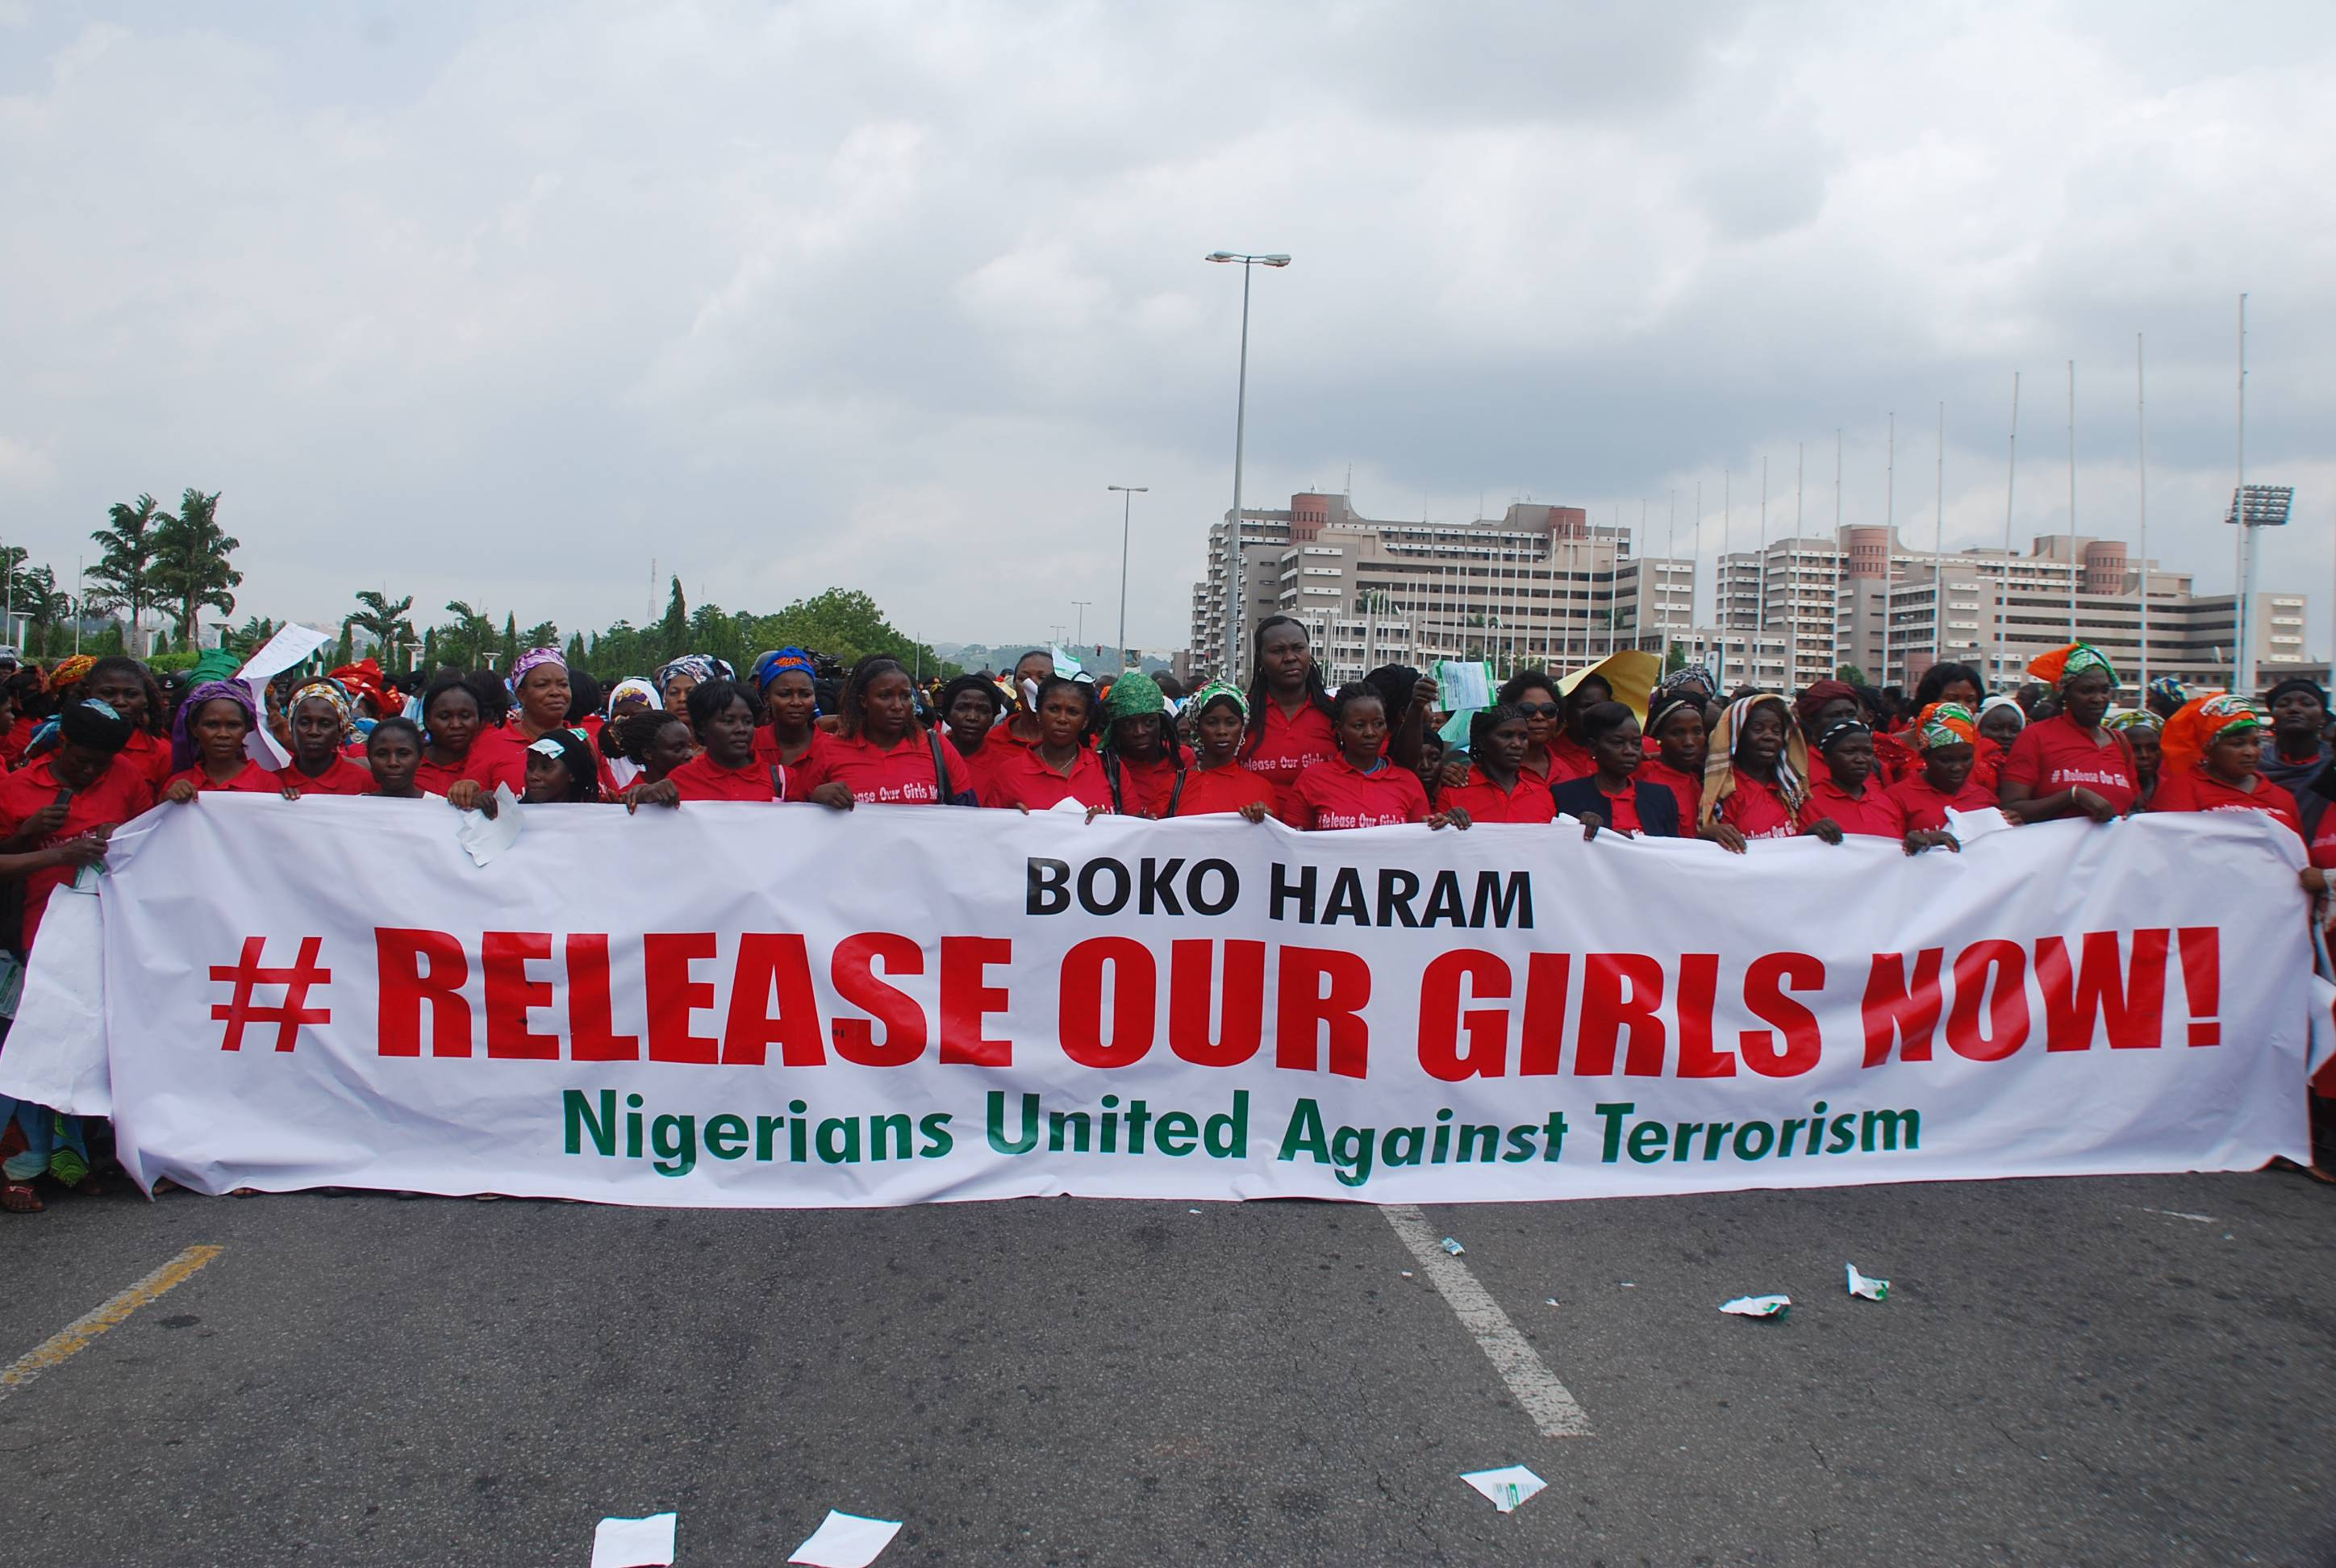 The Nigerians United Against Terrorism group attend a demonstration Monday calling on the government to rescue the kidnapped girls of the government secondary school in Chibok, in Abuja, Nigeria.